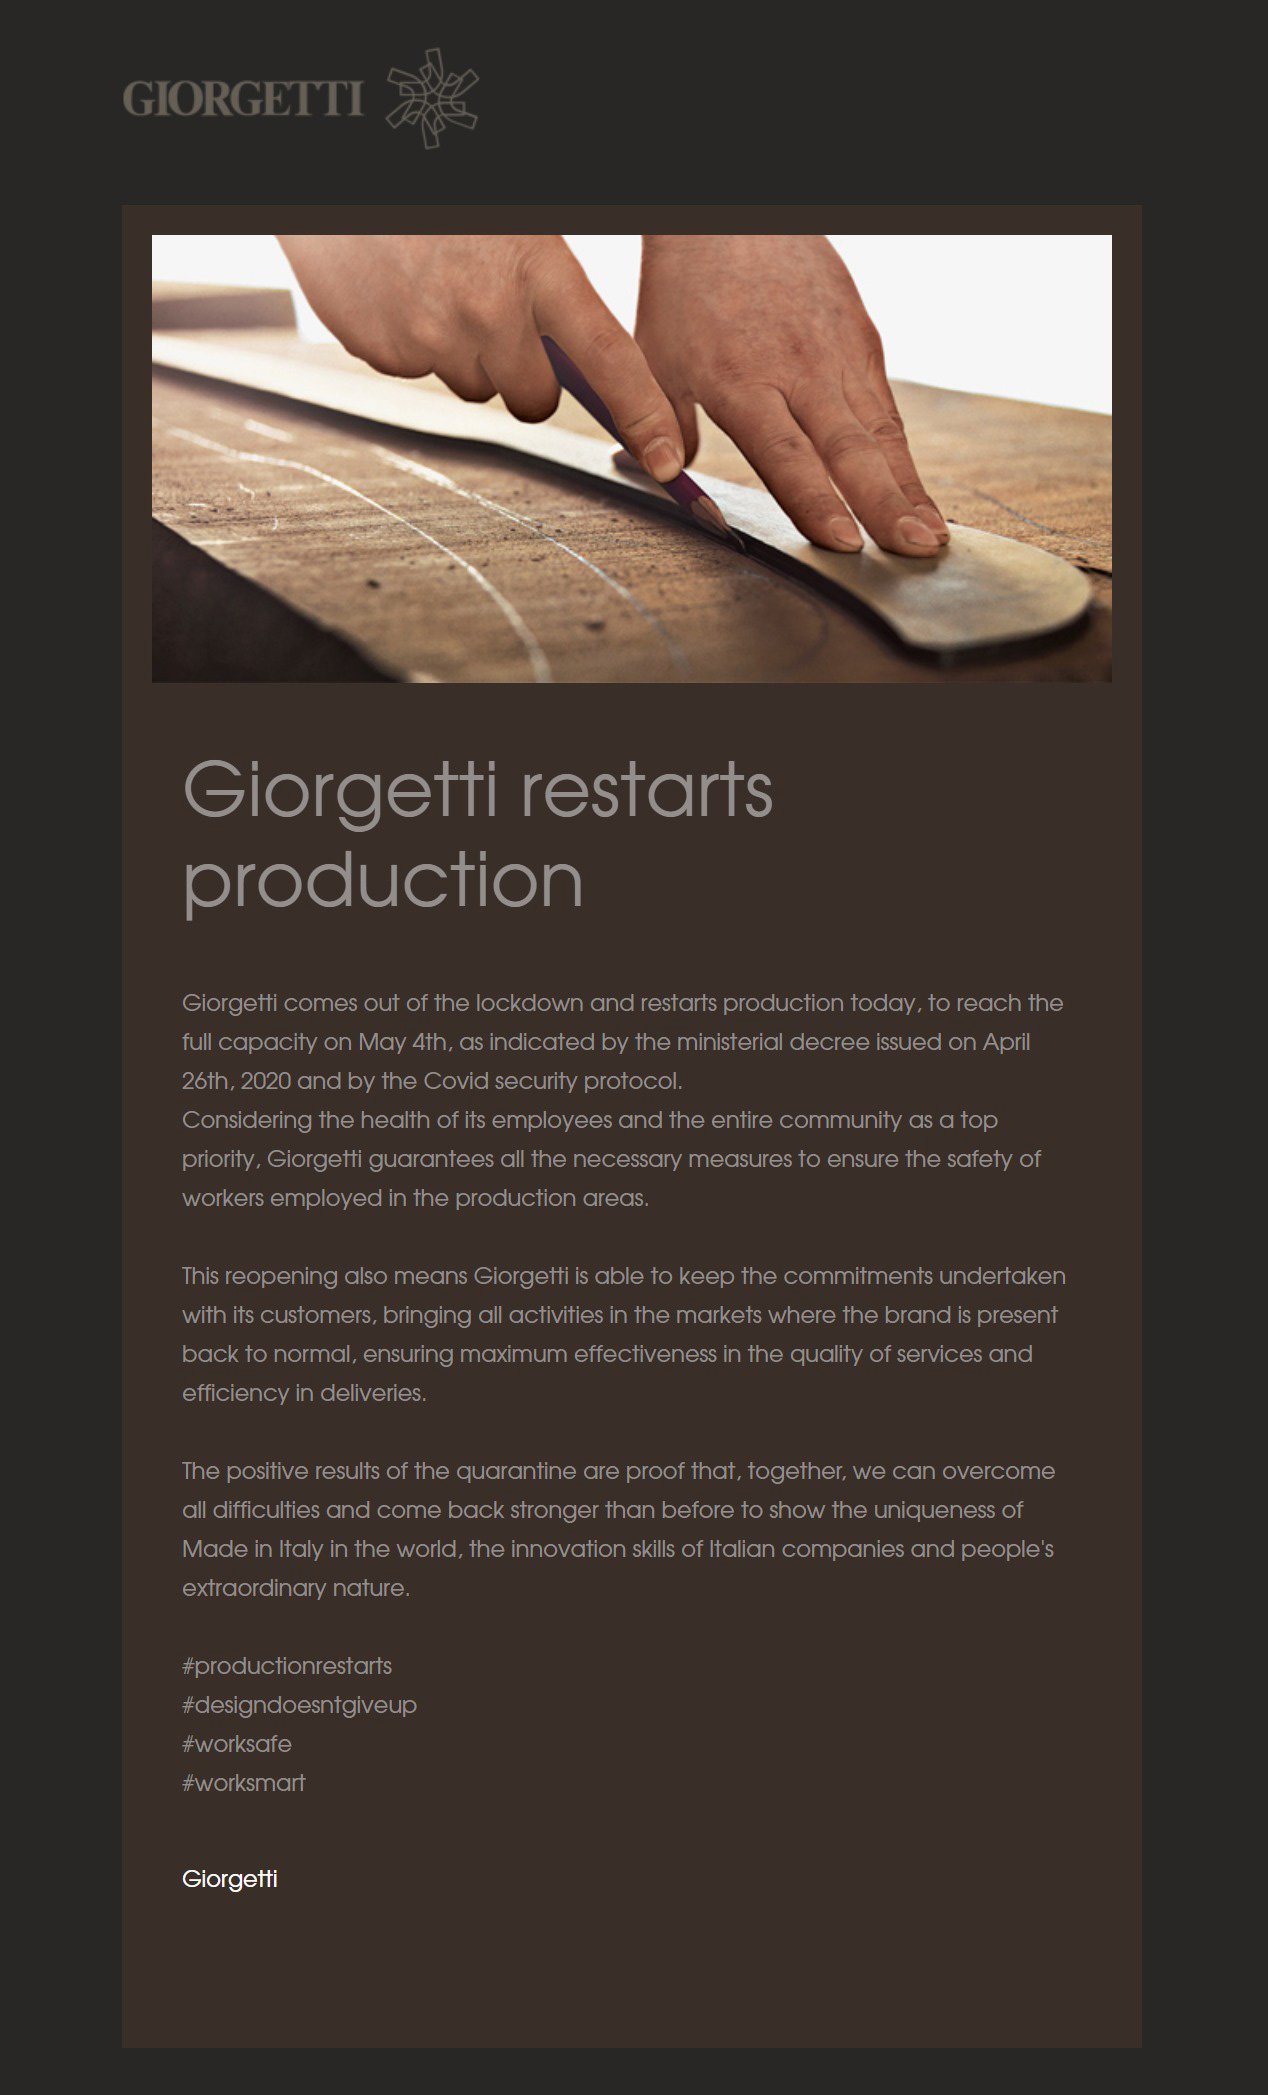 giorgetti restarts production